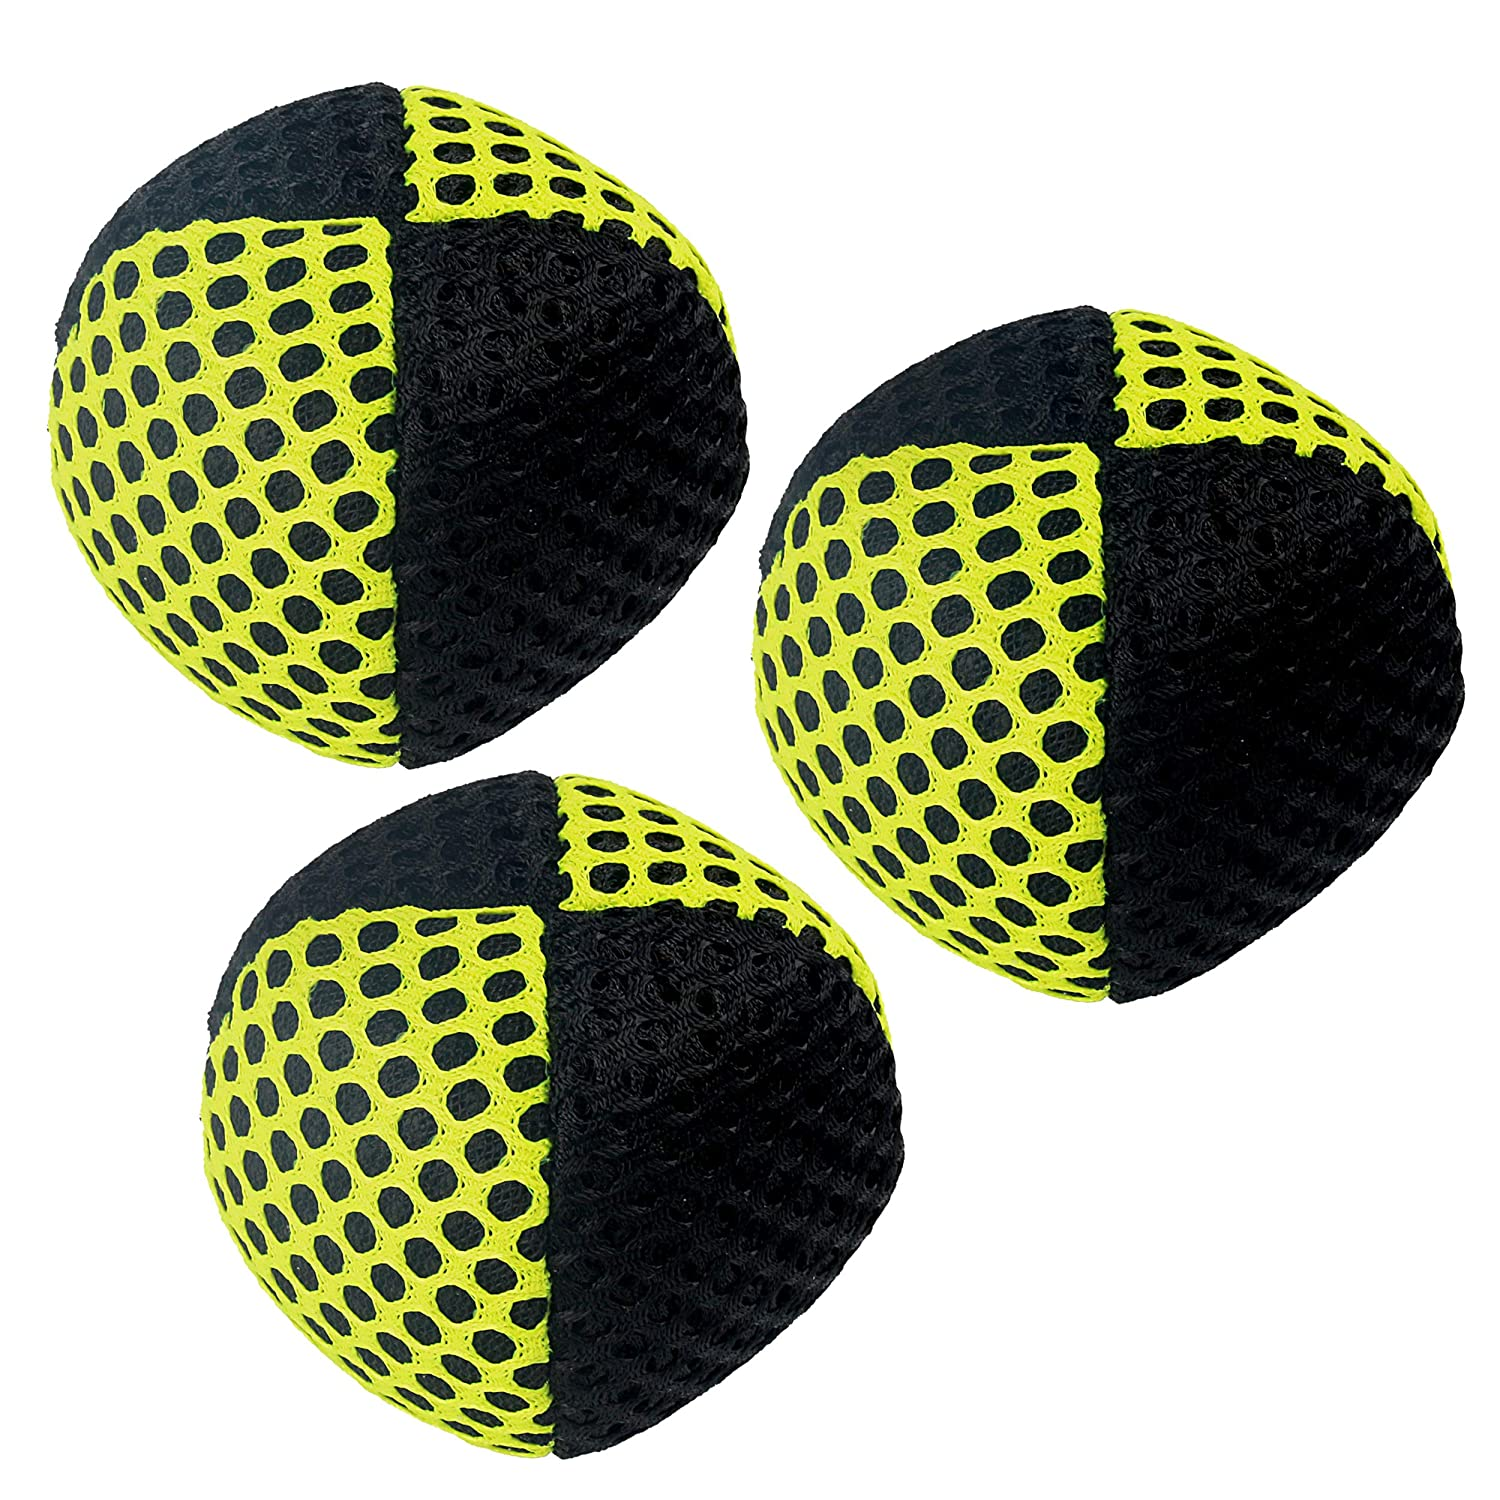 70g Black - Orange Speevers Juggling Balls for Beginners and Professionals XBalls Set of 3 Lightweight Juggling Balls 2.5 Oz Each 2 Layers of Net Carry Case Choice of The World Champions